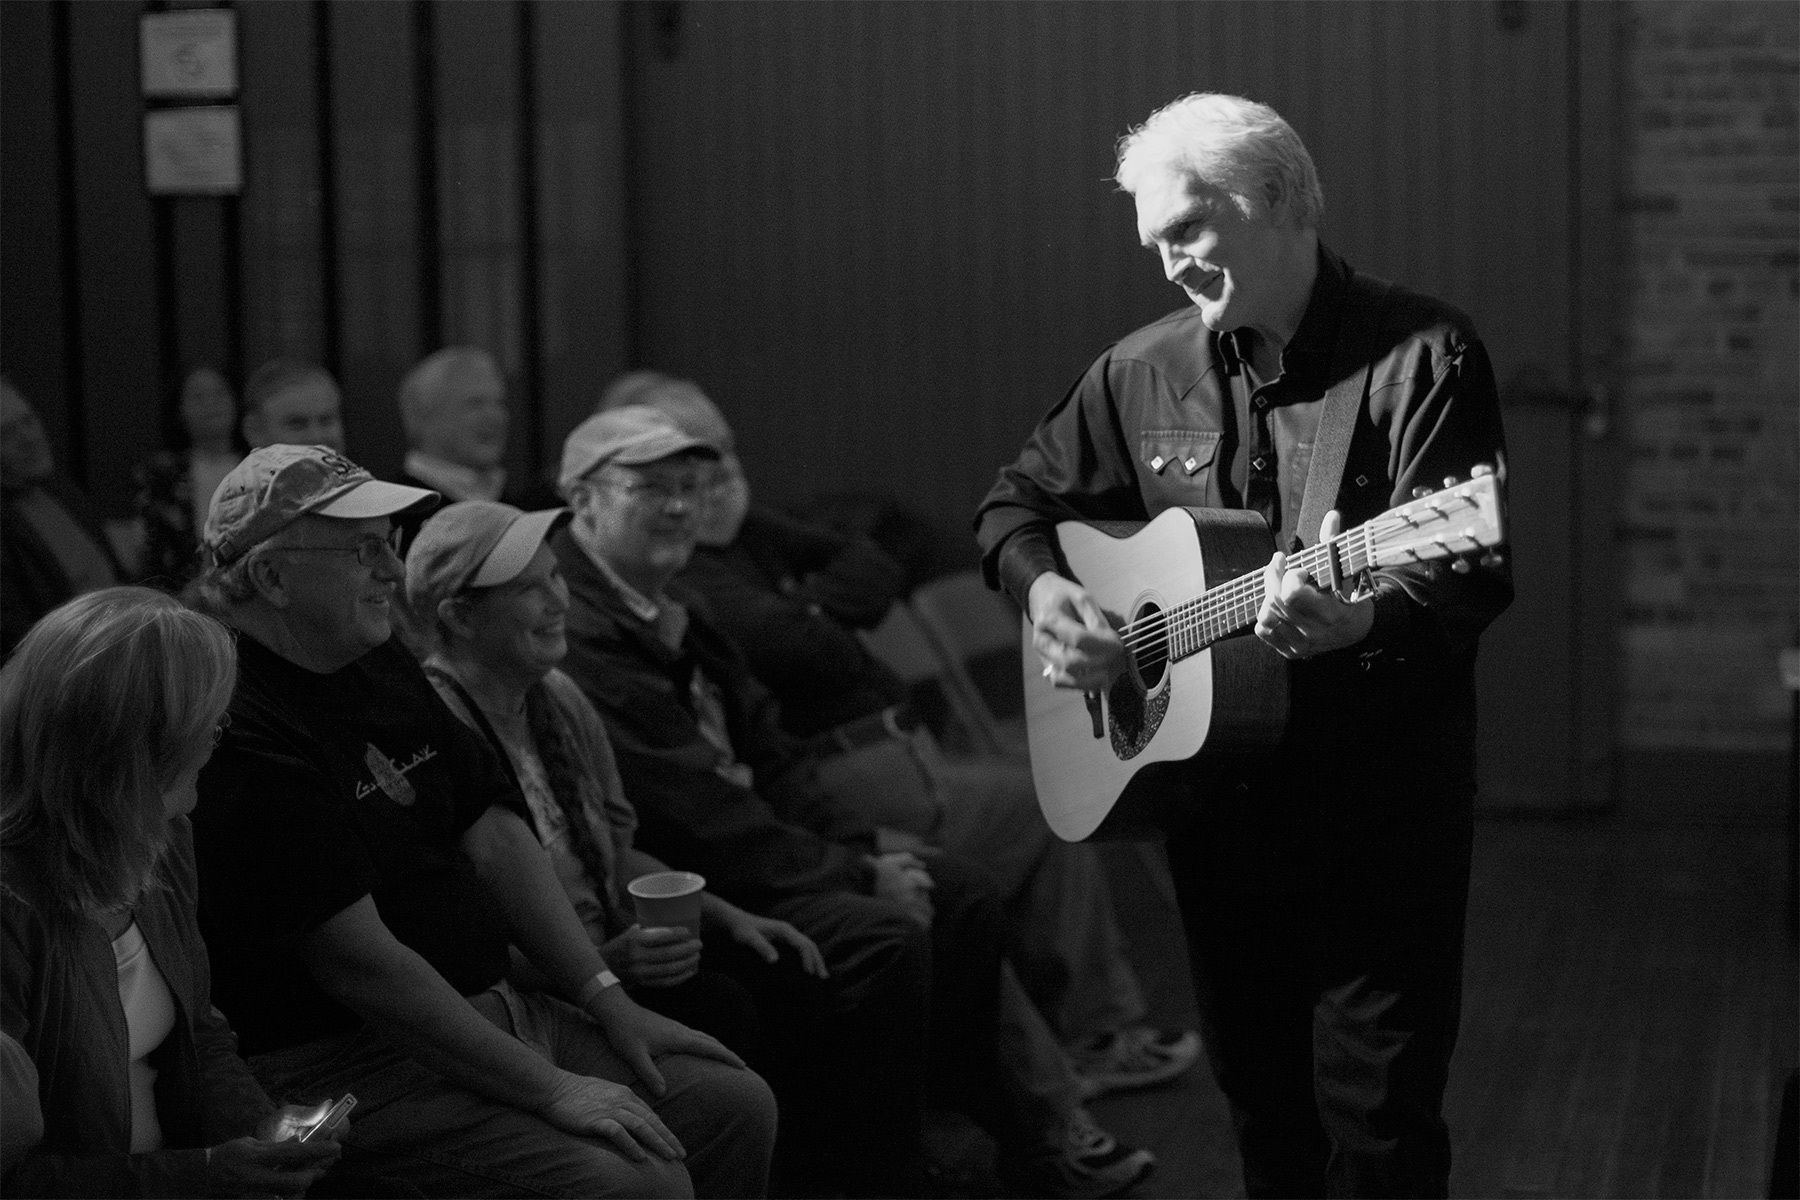 A SXSE favorite, Oklahoma born songwriter Verlon Thompson has played the series three times since it was started. He has been  a professional songwriter and traveling troubadour for 30 years and served as the trusted sidekick of the late Texas Americana songwriting icon Guy Clark. This photo was from his performance in November of 2012.